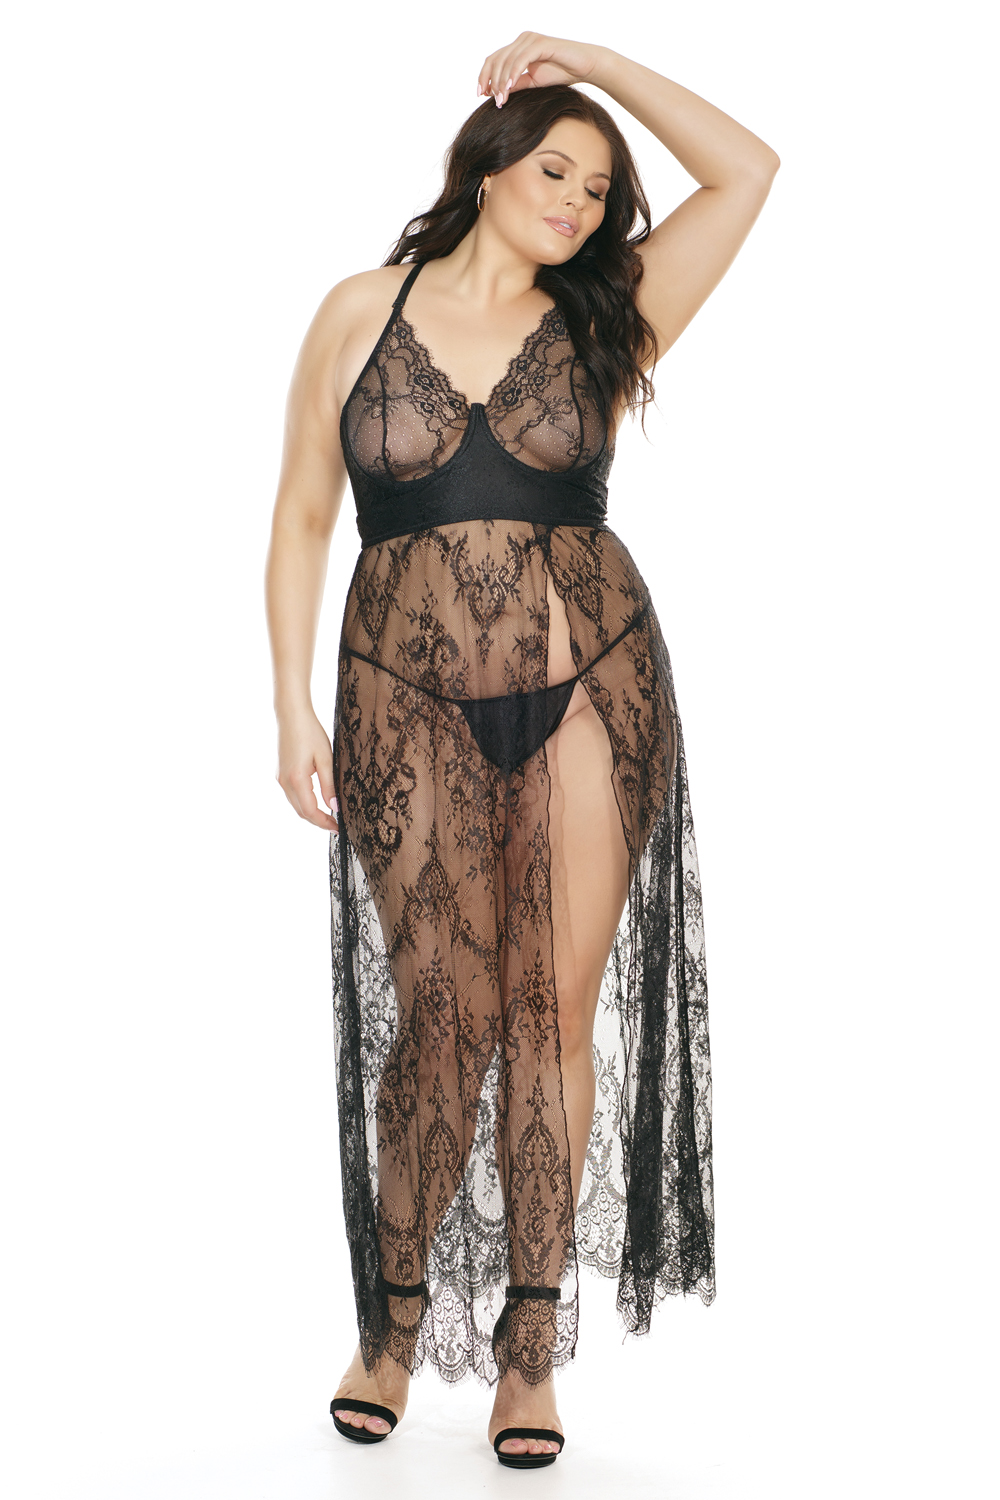 lace gown underwire cups high side slit 7216 Edmonton